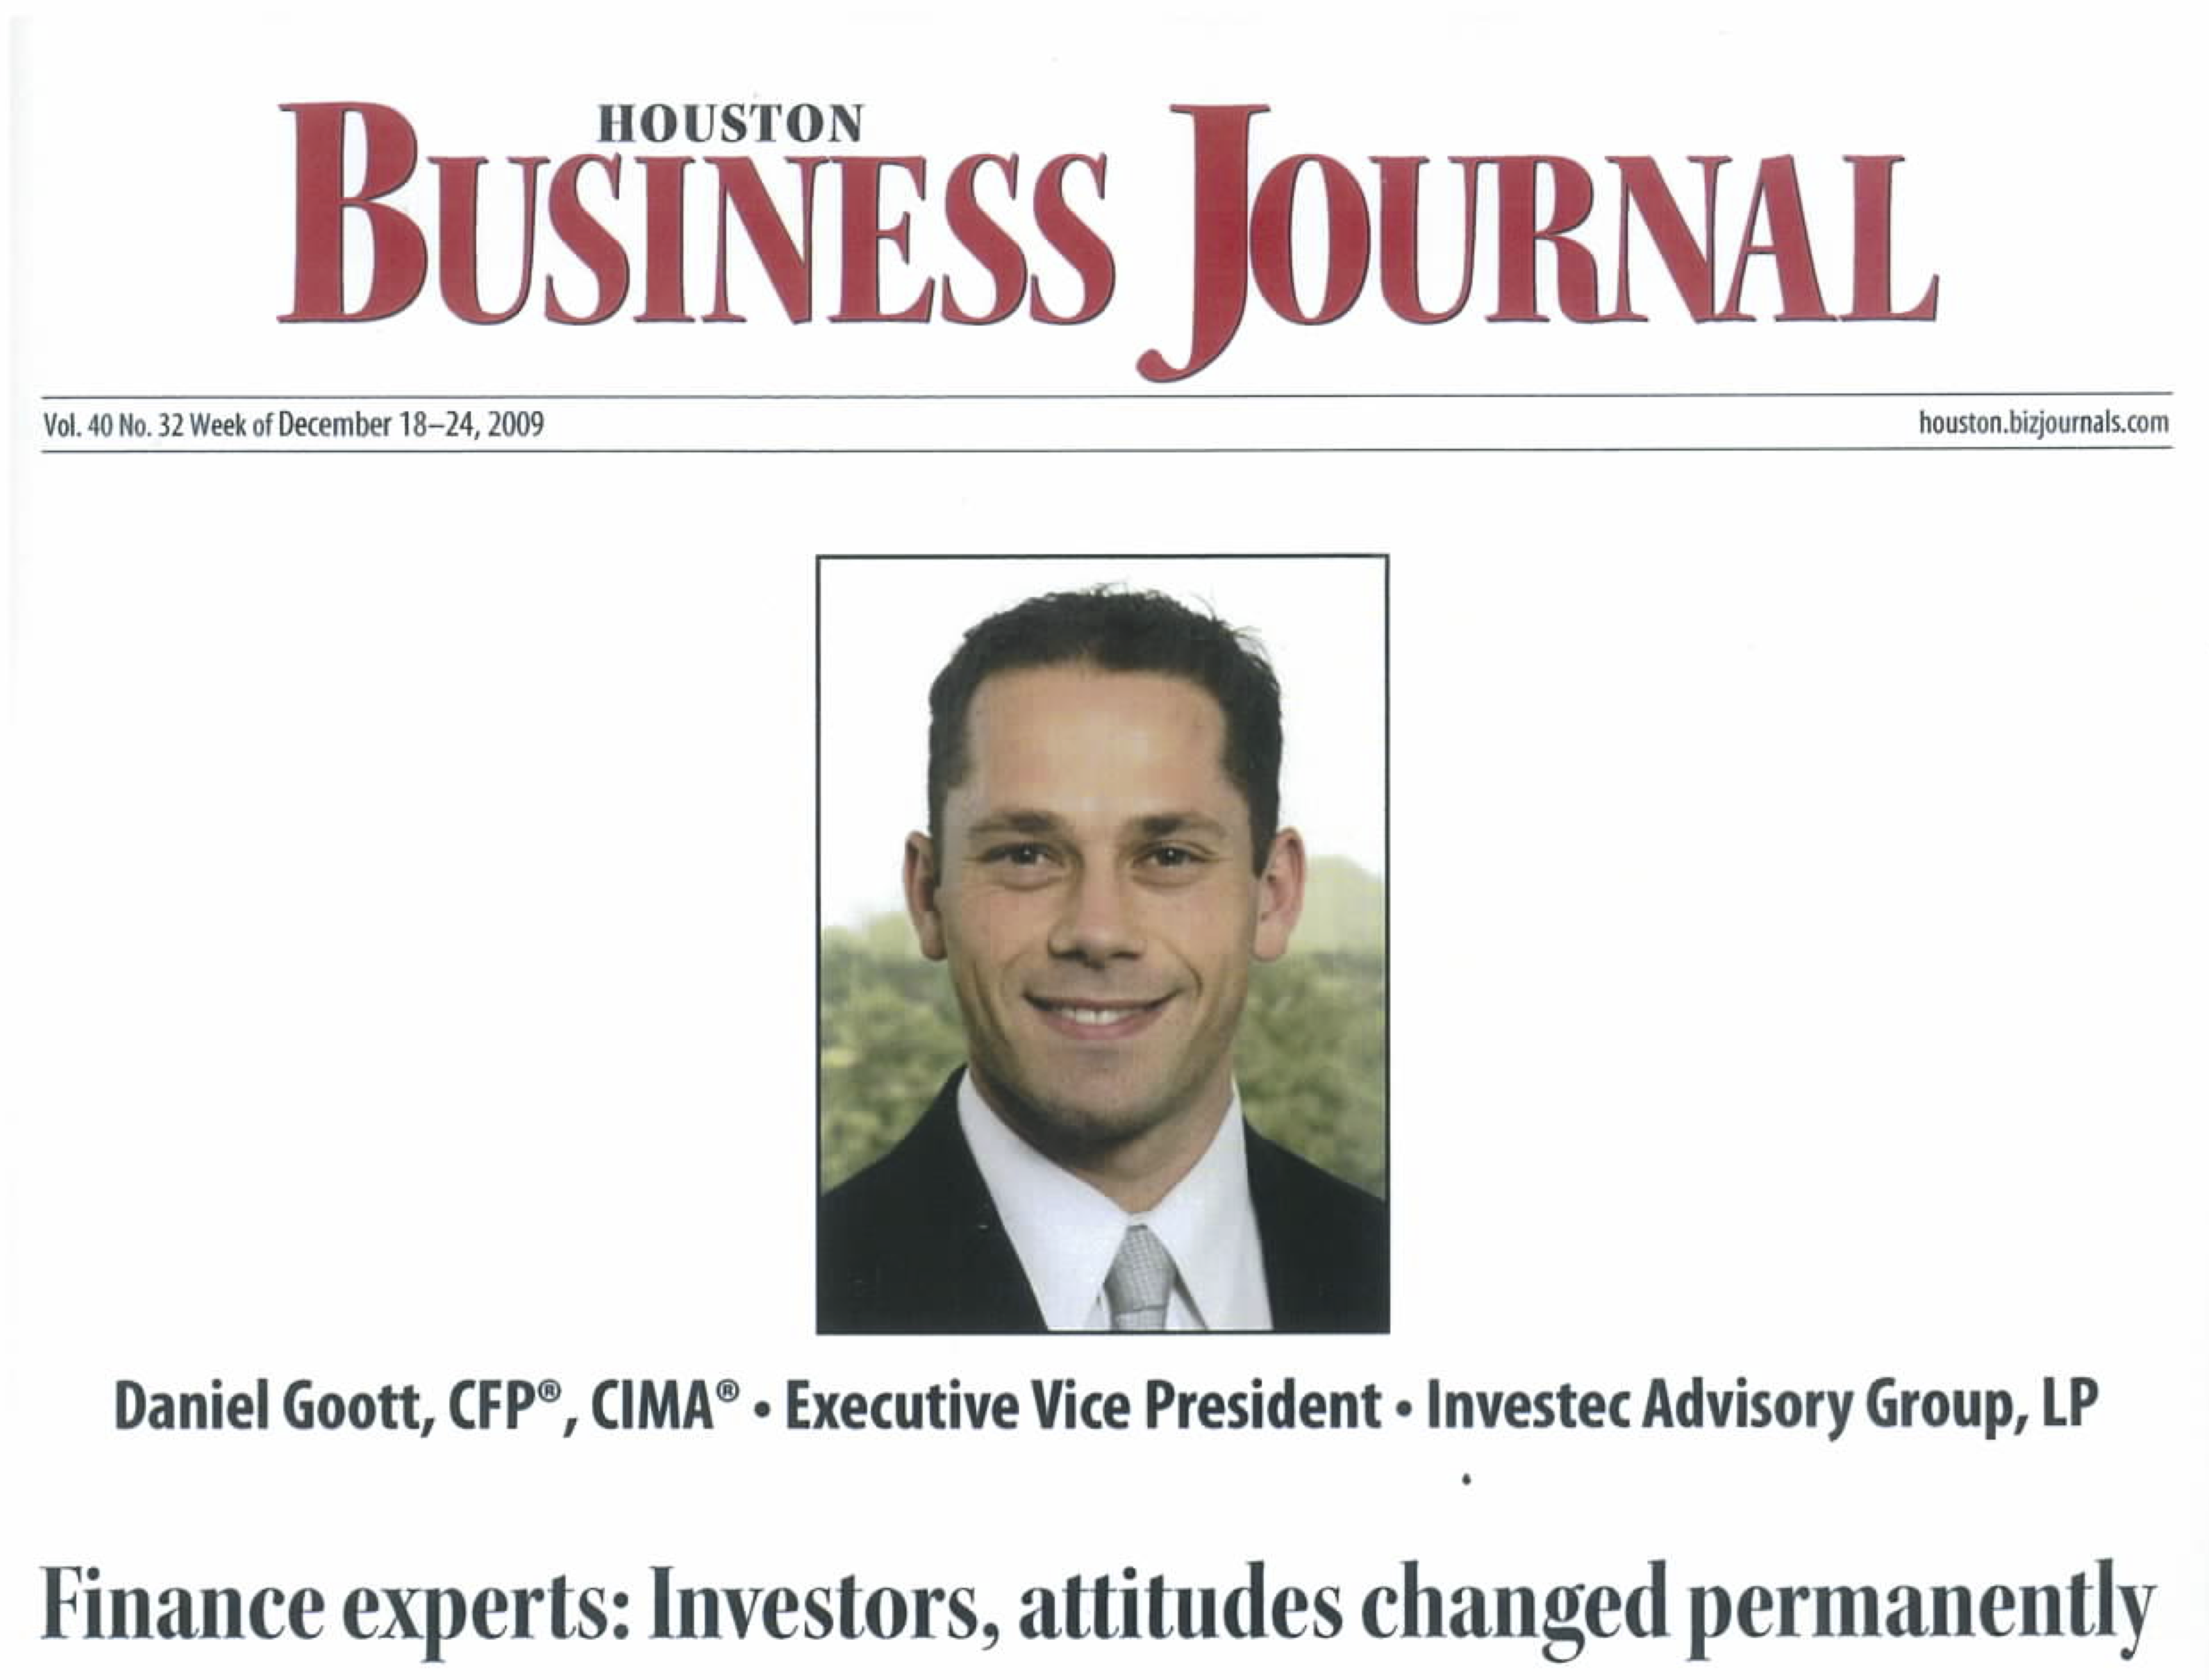 Investec - Houston Business Journal Press Feature, Finance Experts: Investors, Attitudes Changed Permanently, 2009